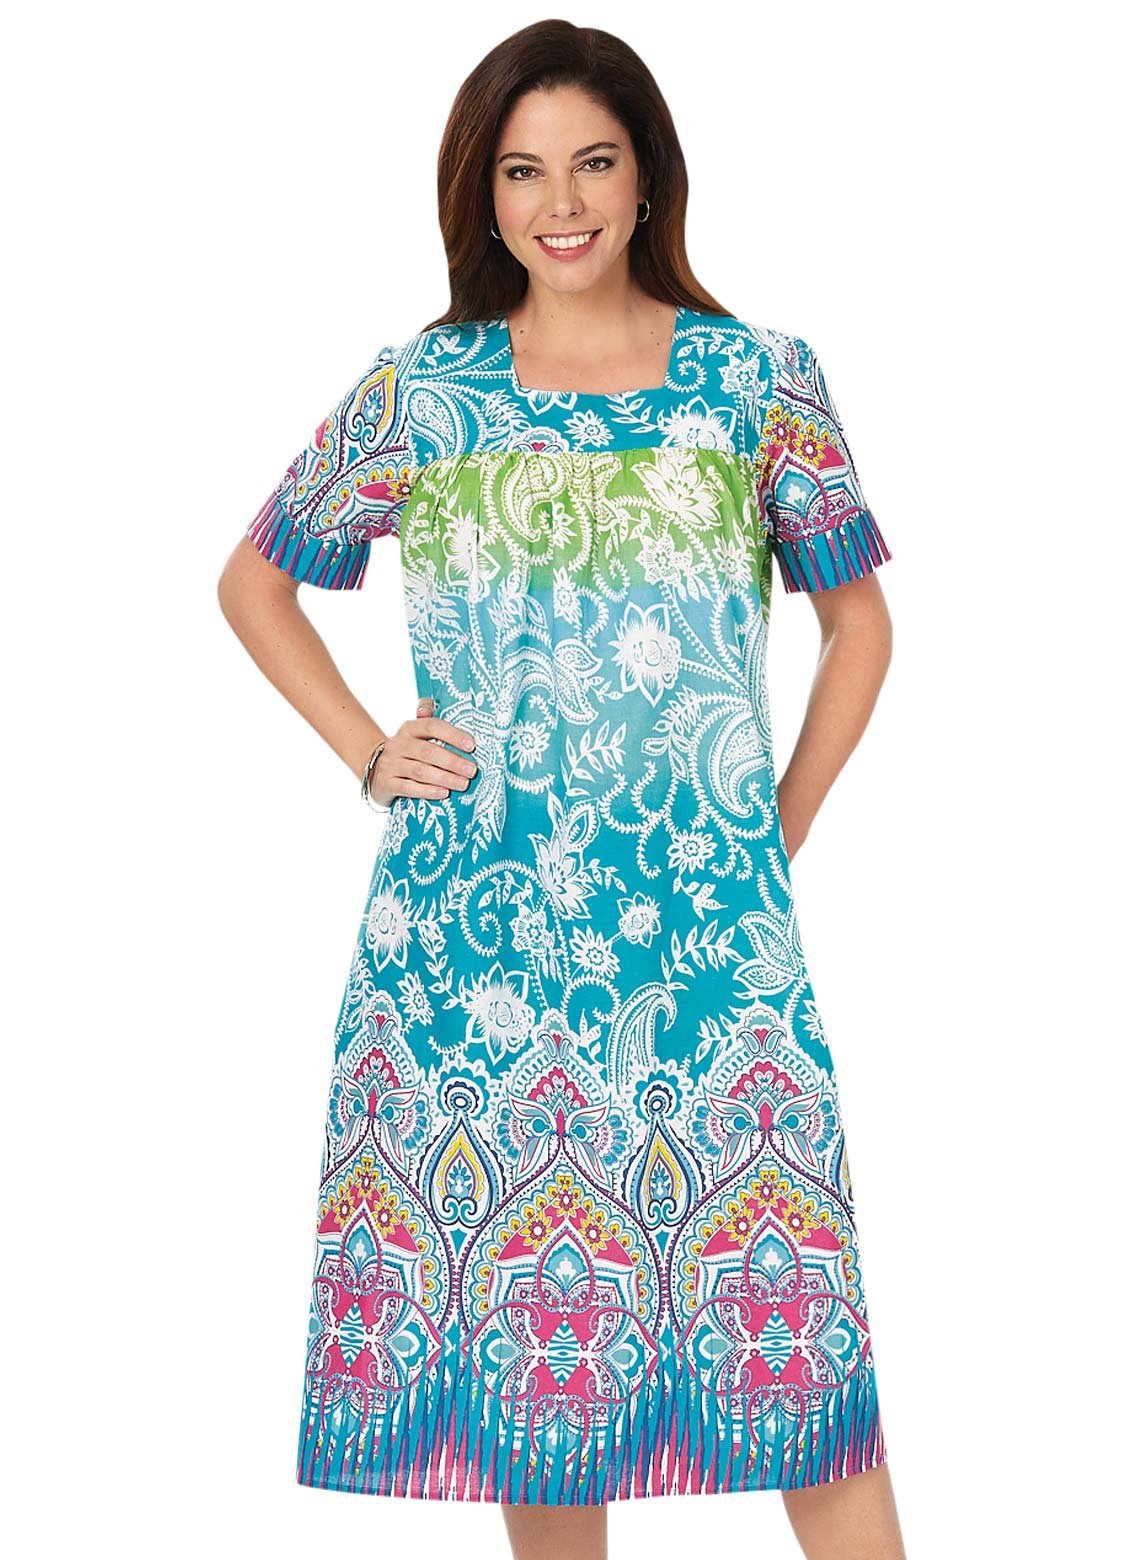 Carol Wright Gifts Flattering Batik Dress, Color Multi, Size Small, Multi, Size Small